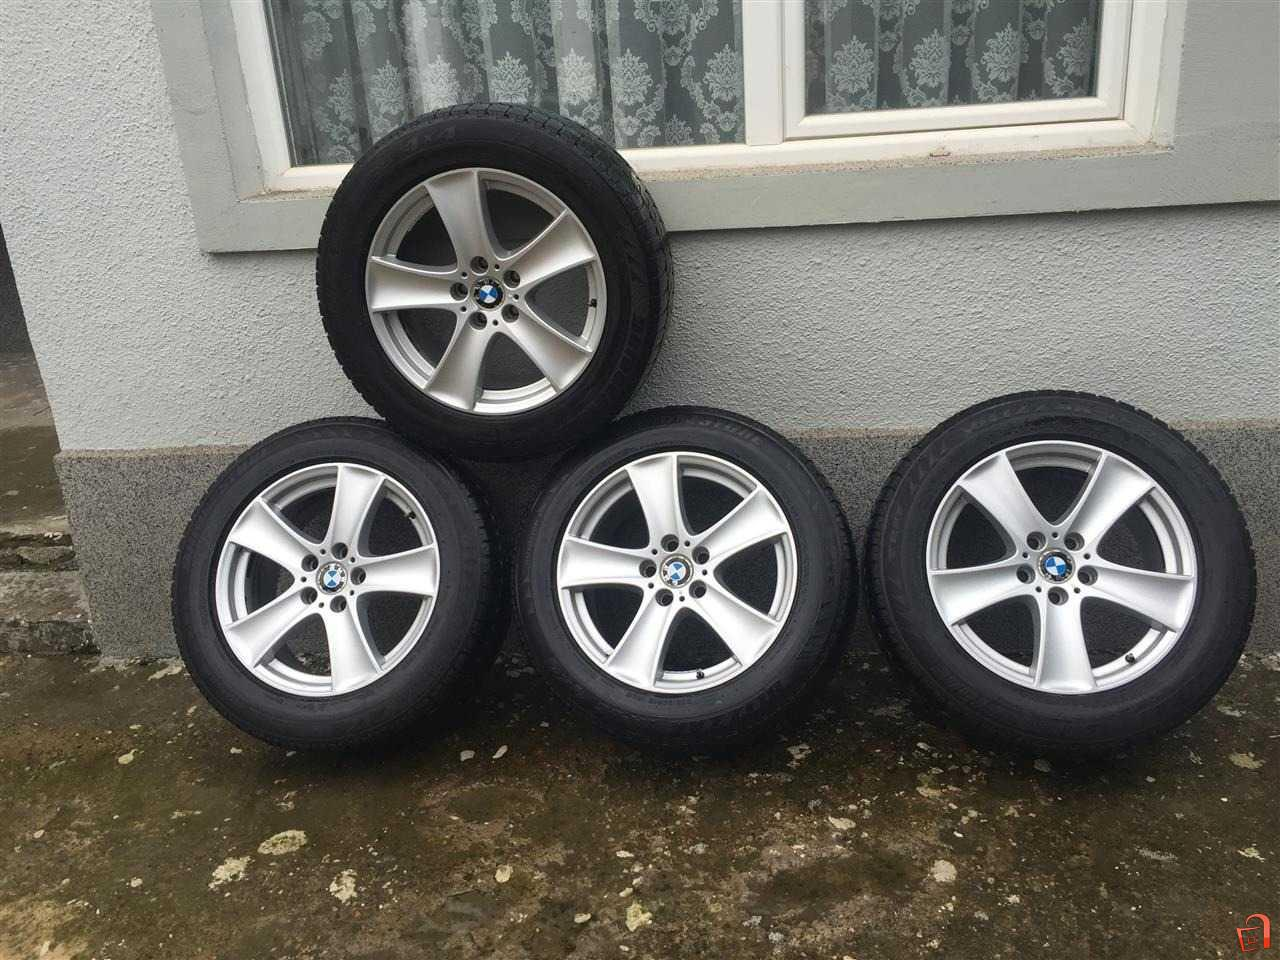 pazar3mk ad gumi i bandazi 225 55 16 i 255 55 18 i 235 55 17 for sale skopje gazi baba vehicles automobile parts and equipment tires and rims